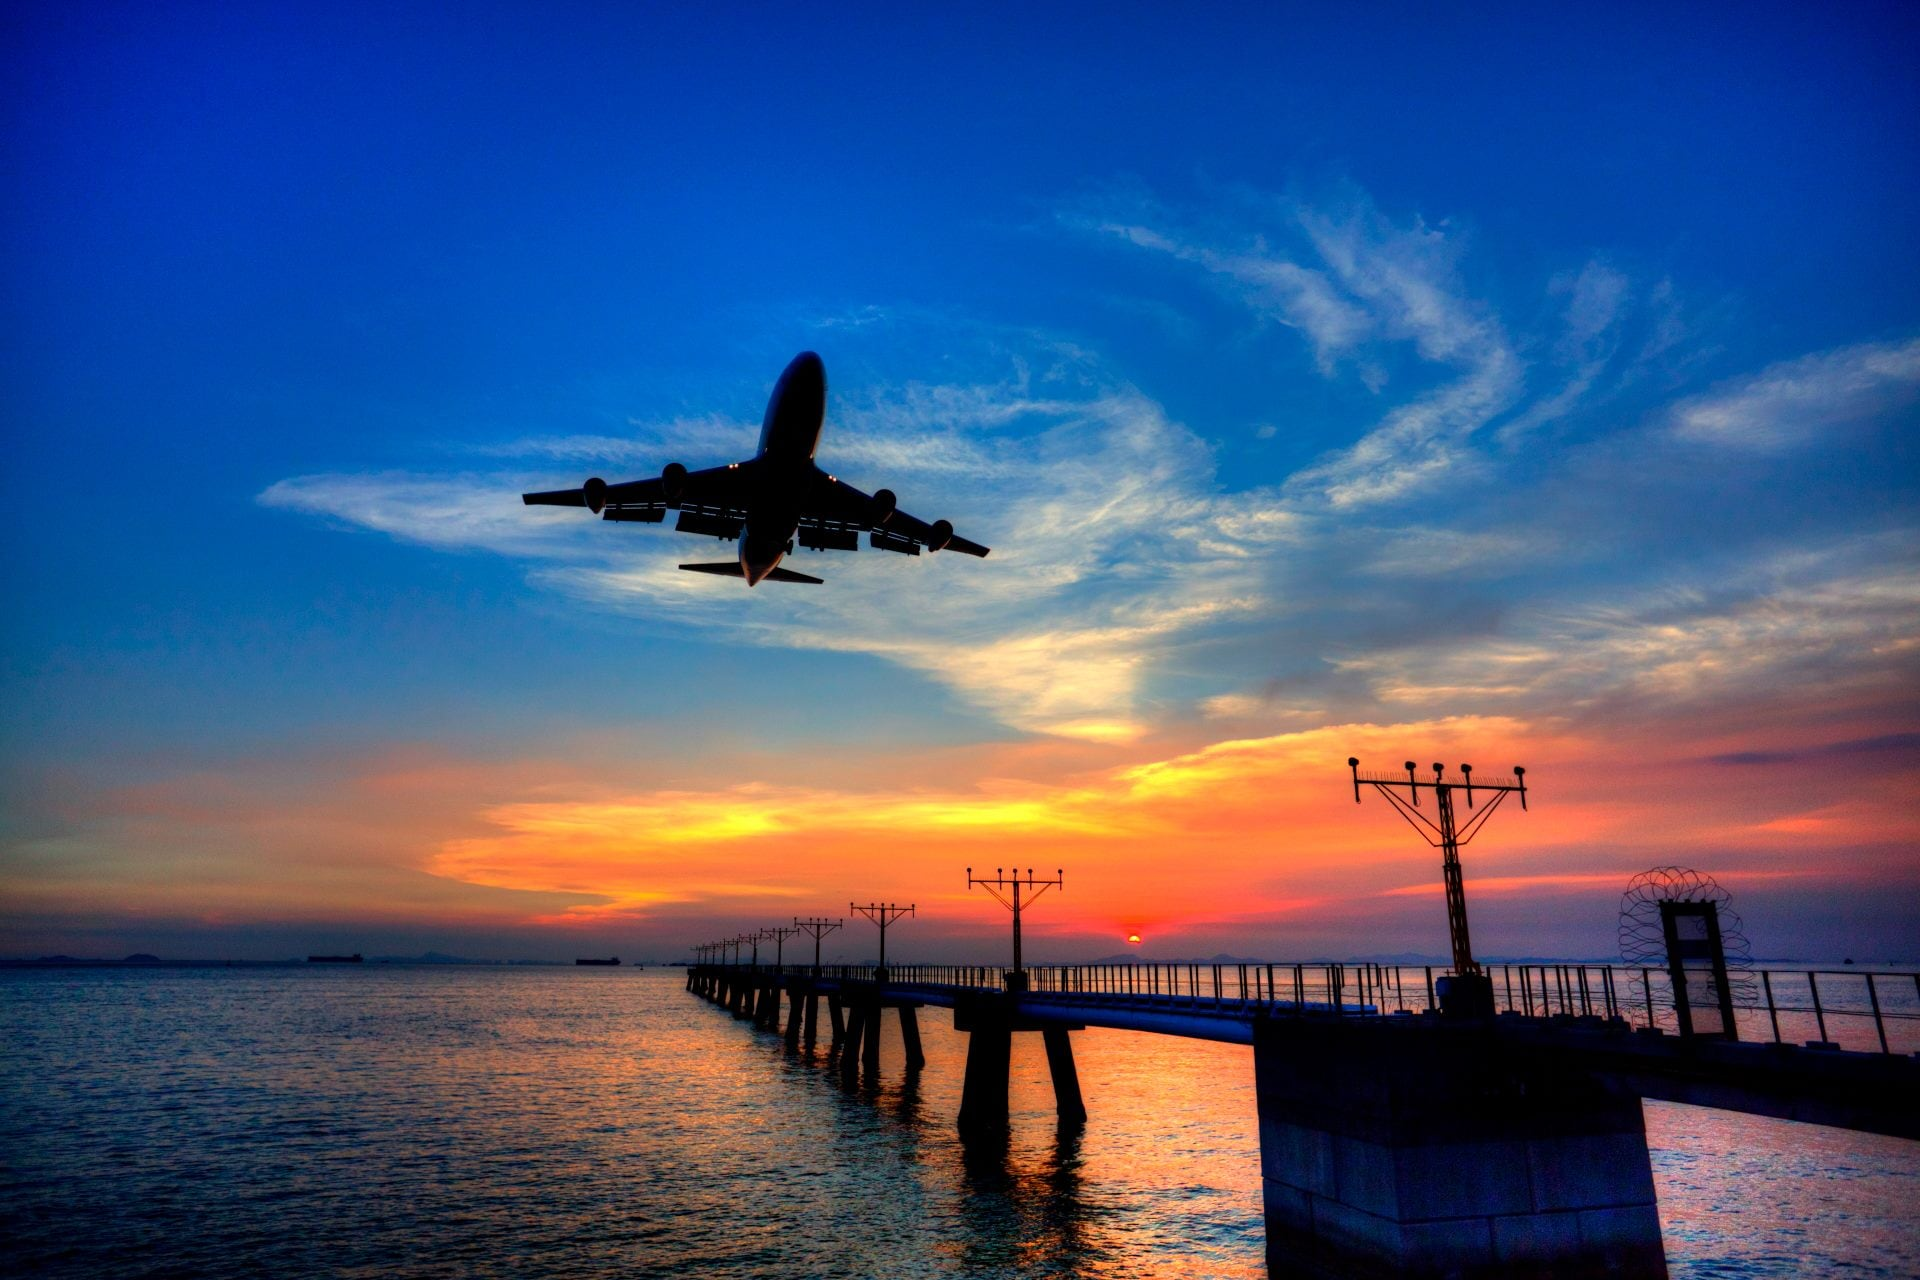 Aeronautical lights and airplane landing at Hong Kong International Airport